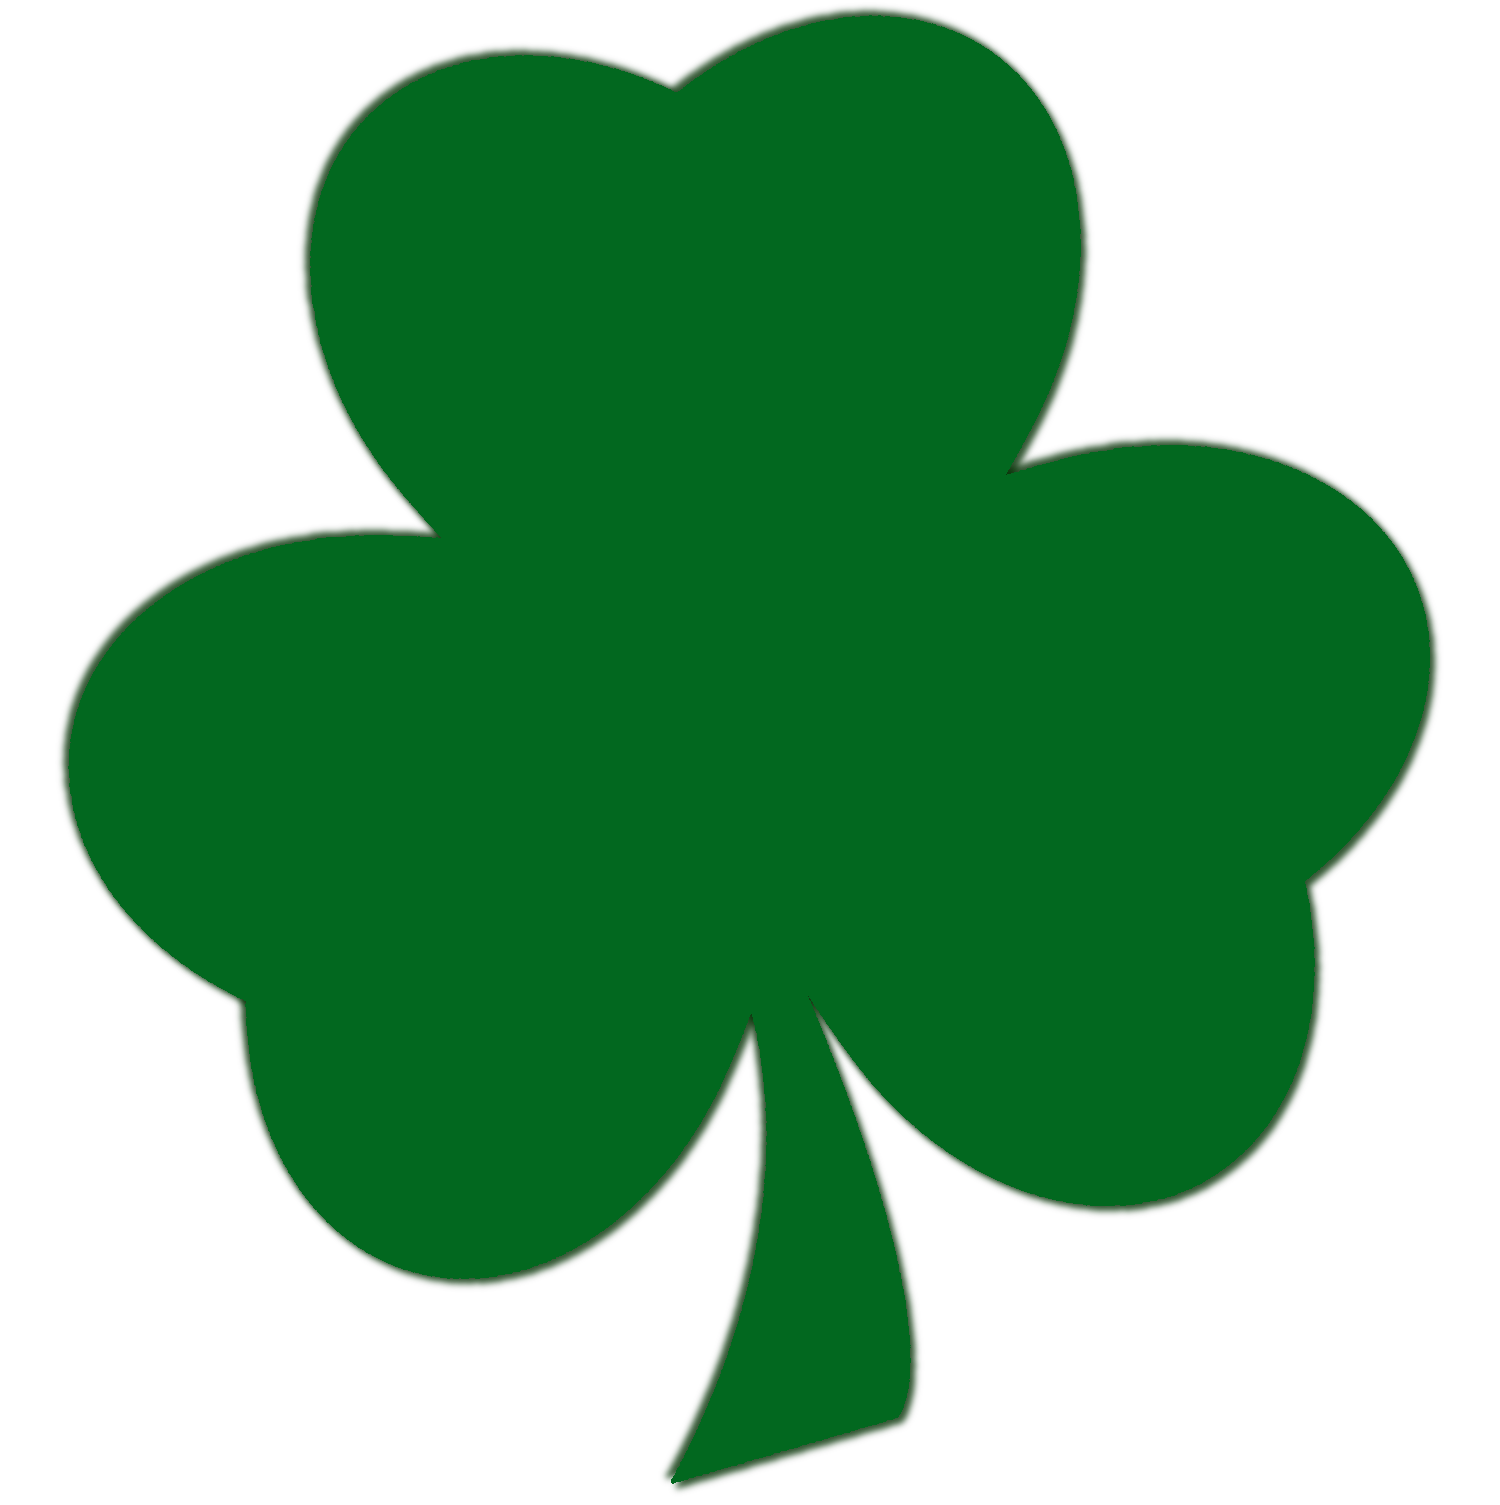 Clipart balloon st patrick's day. Clover gr google doodle